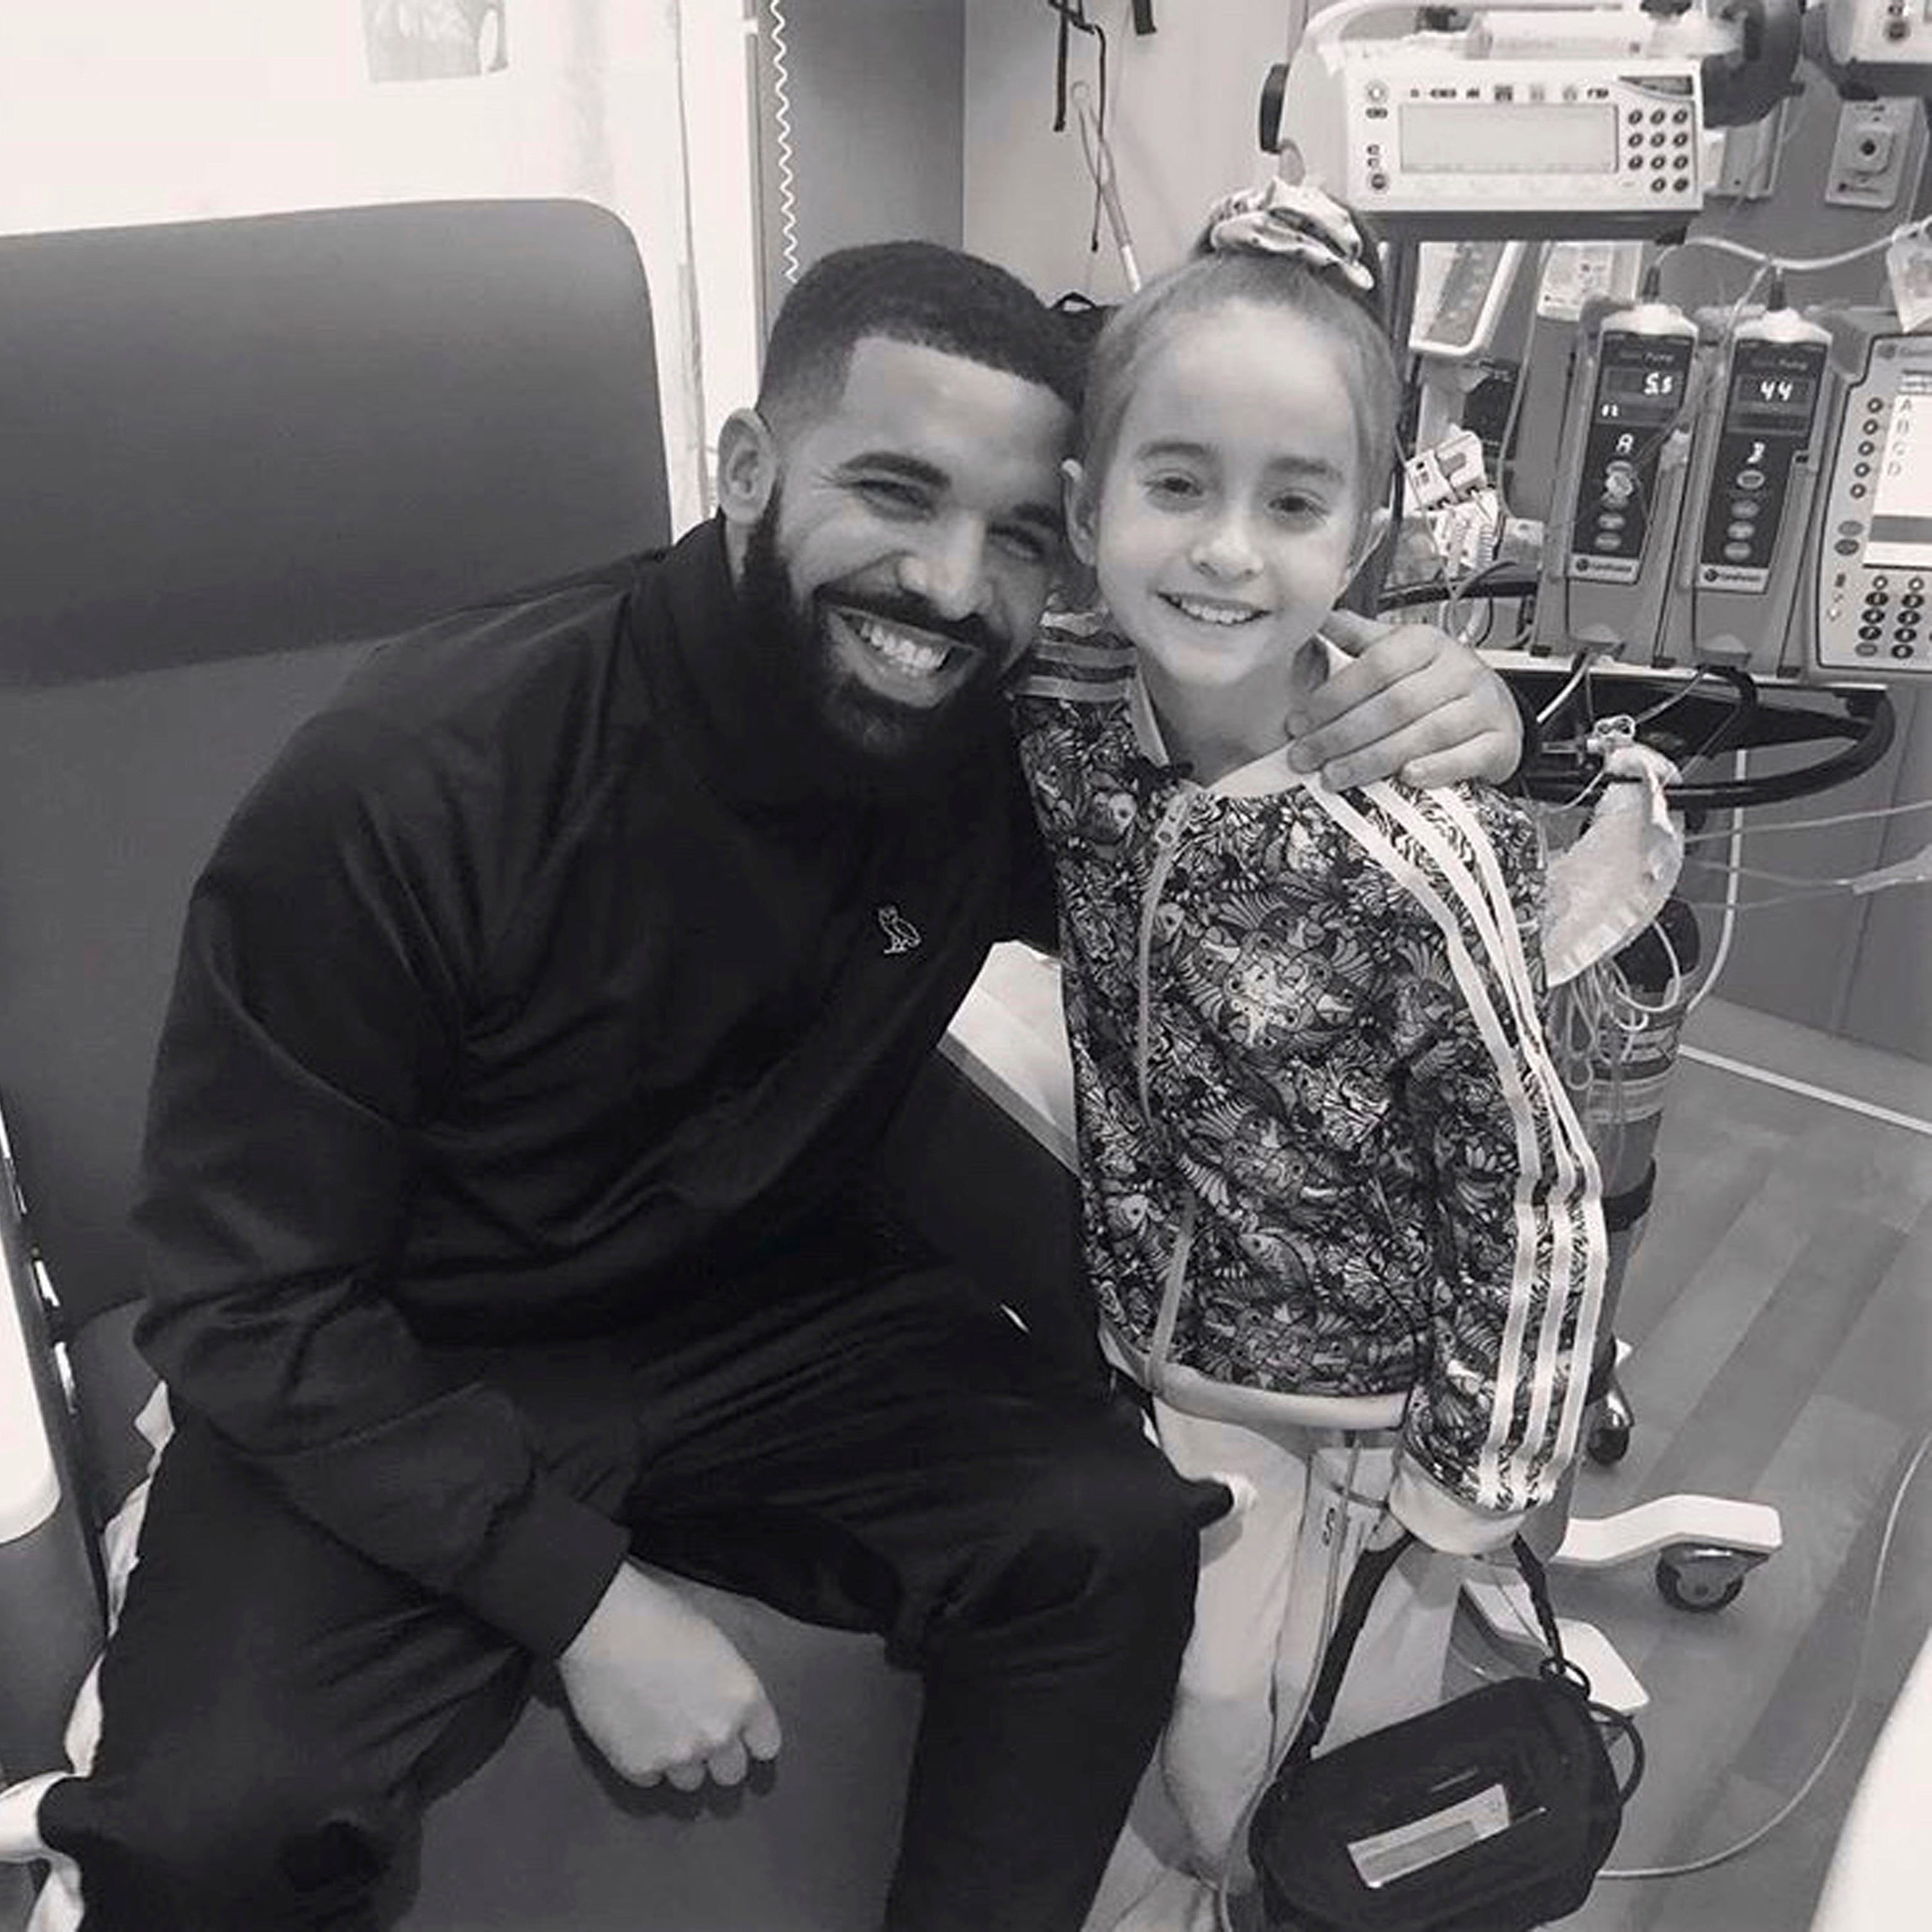 Girl surprised by Drake in hospital is 'back to her old self' after heart transplant